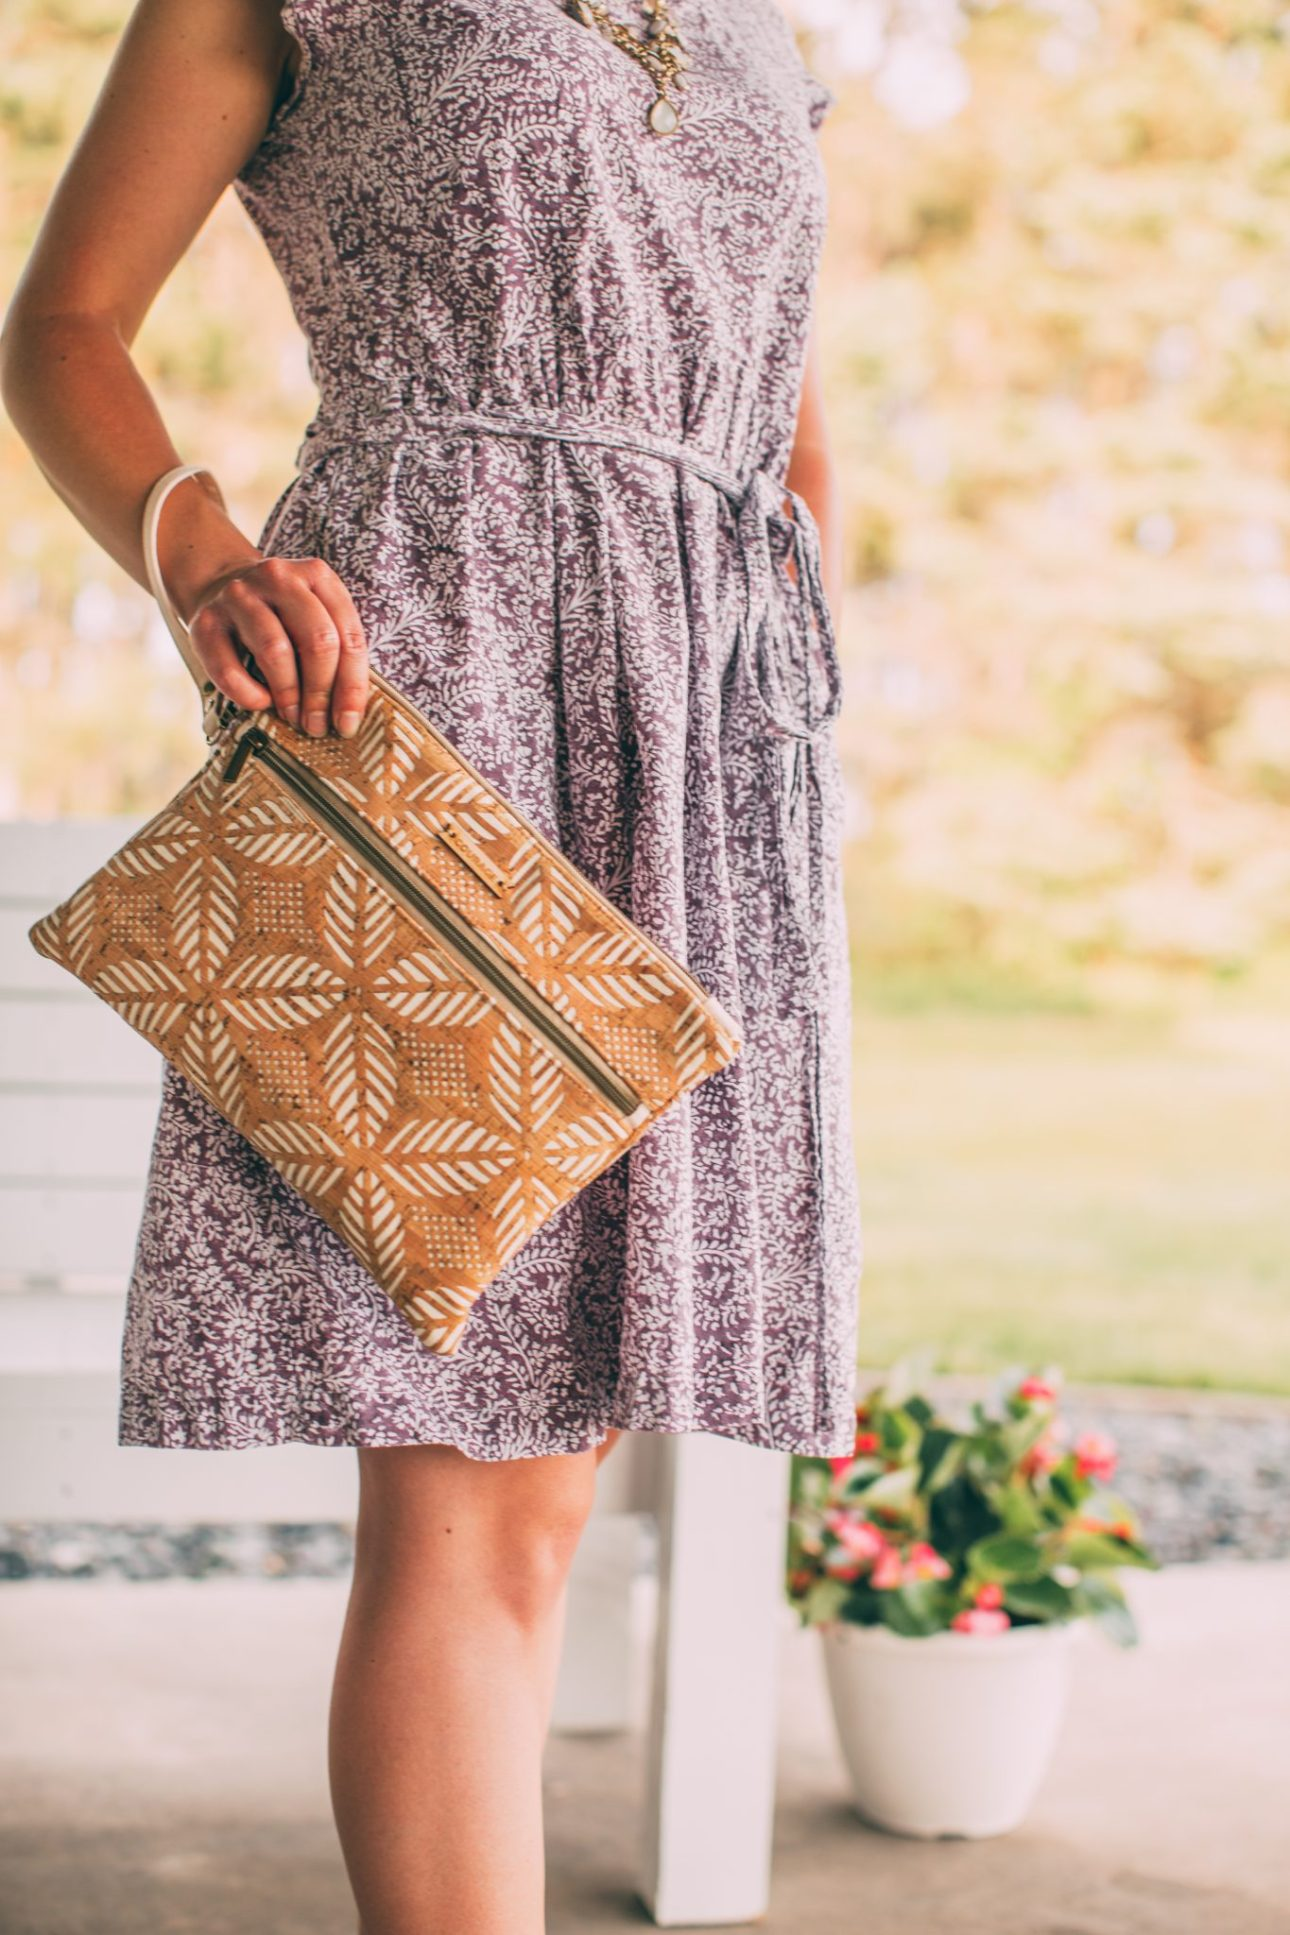 INVENTOR tablet organizer | CREAM - made from sustainable vegan cork fabric Honest Review of Carry Courage - Sustainable Travel Bags & Luggage Tags